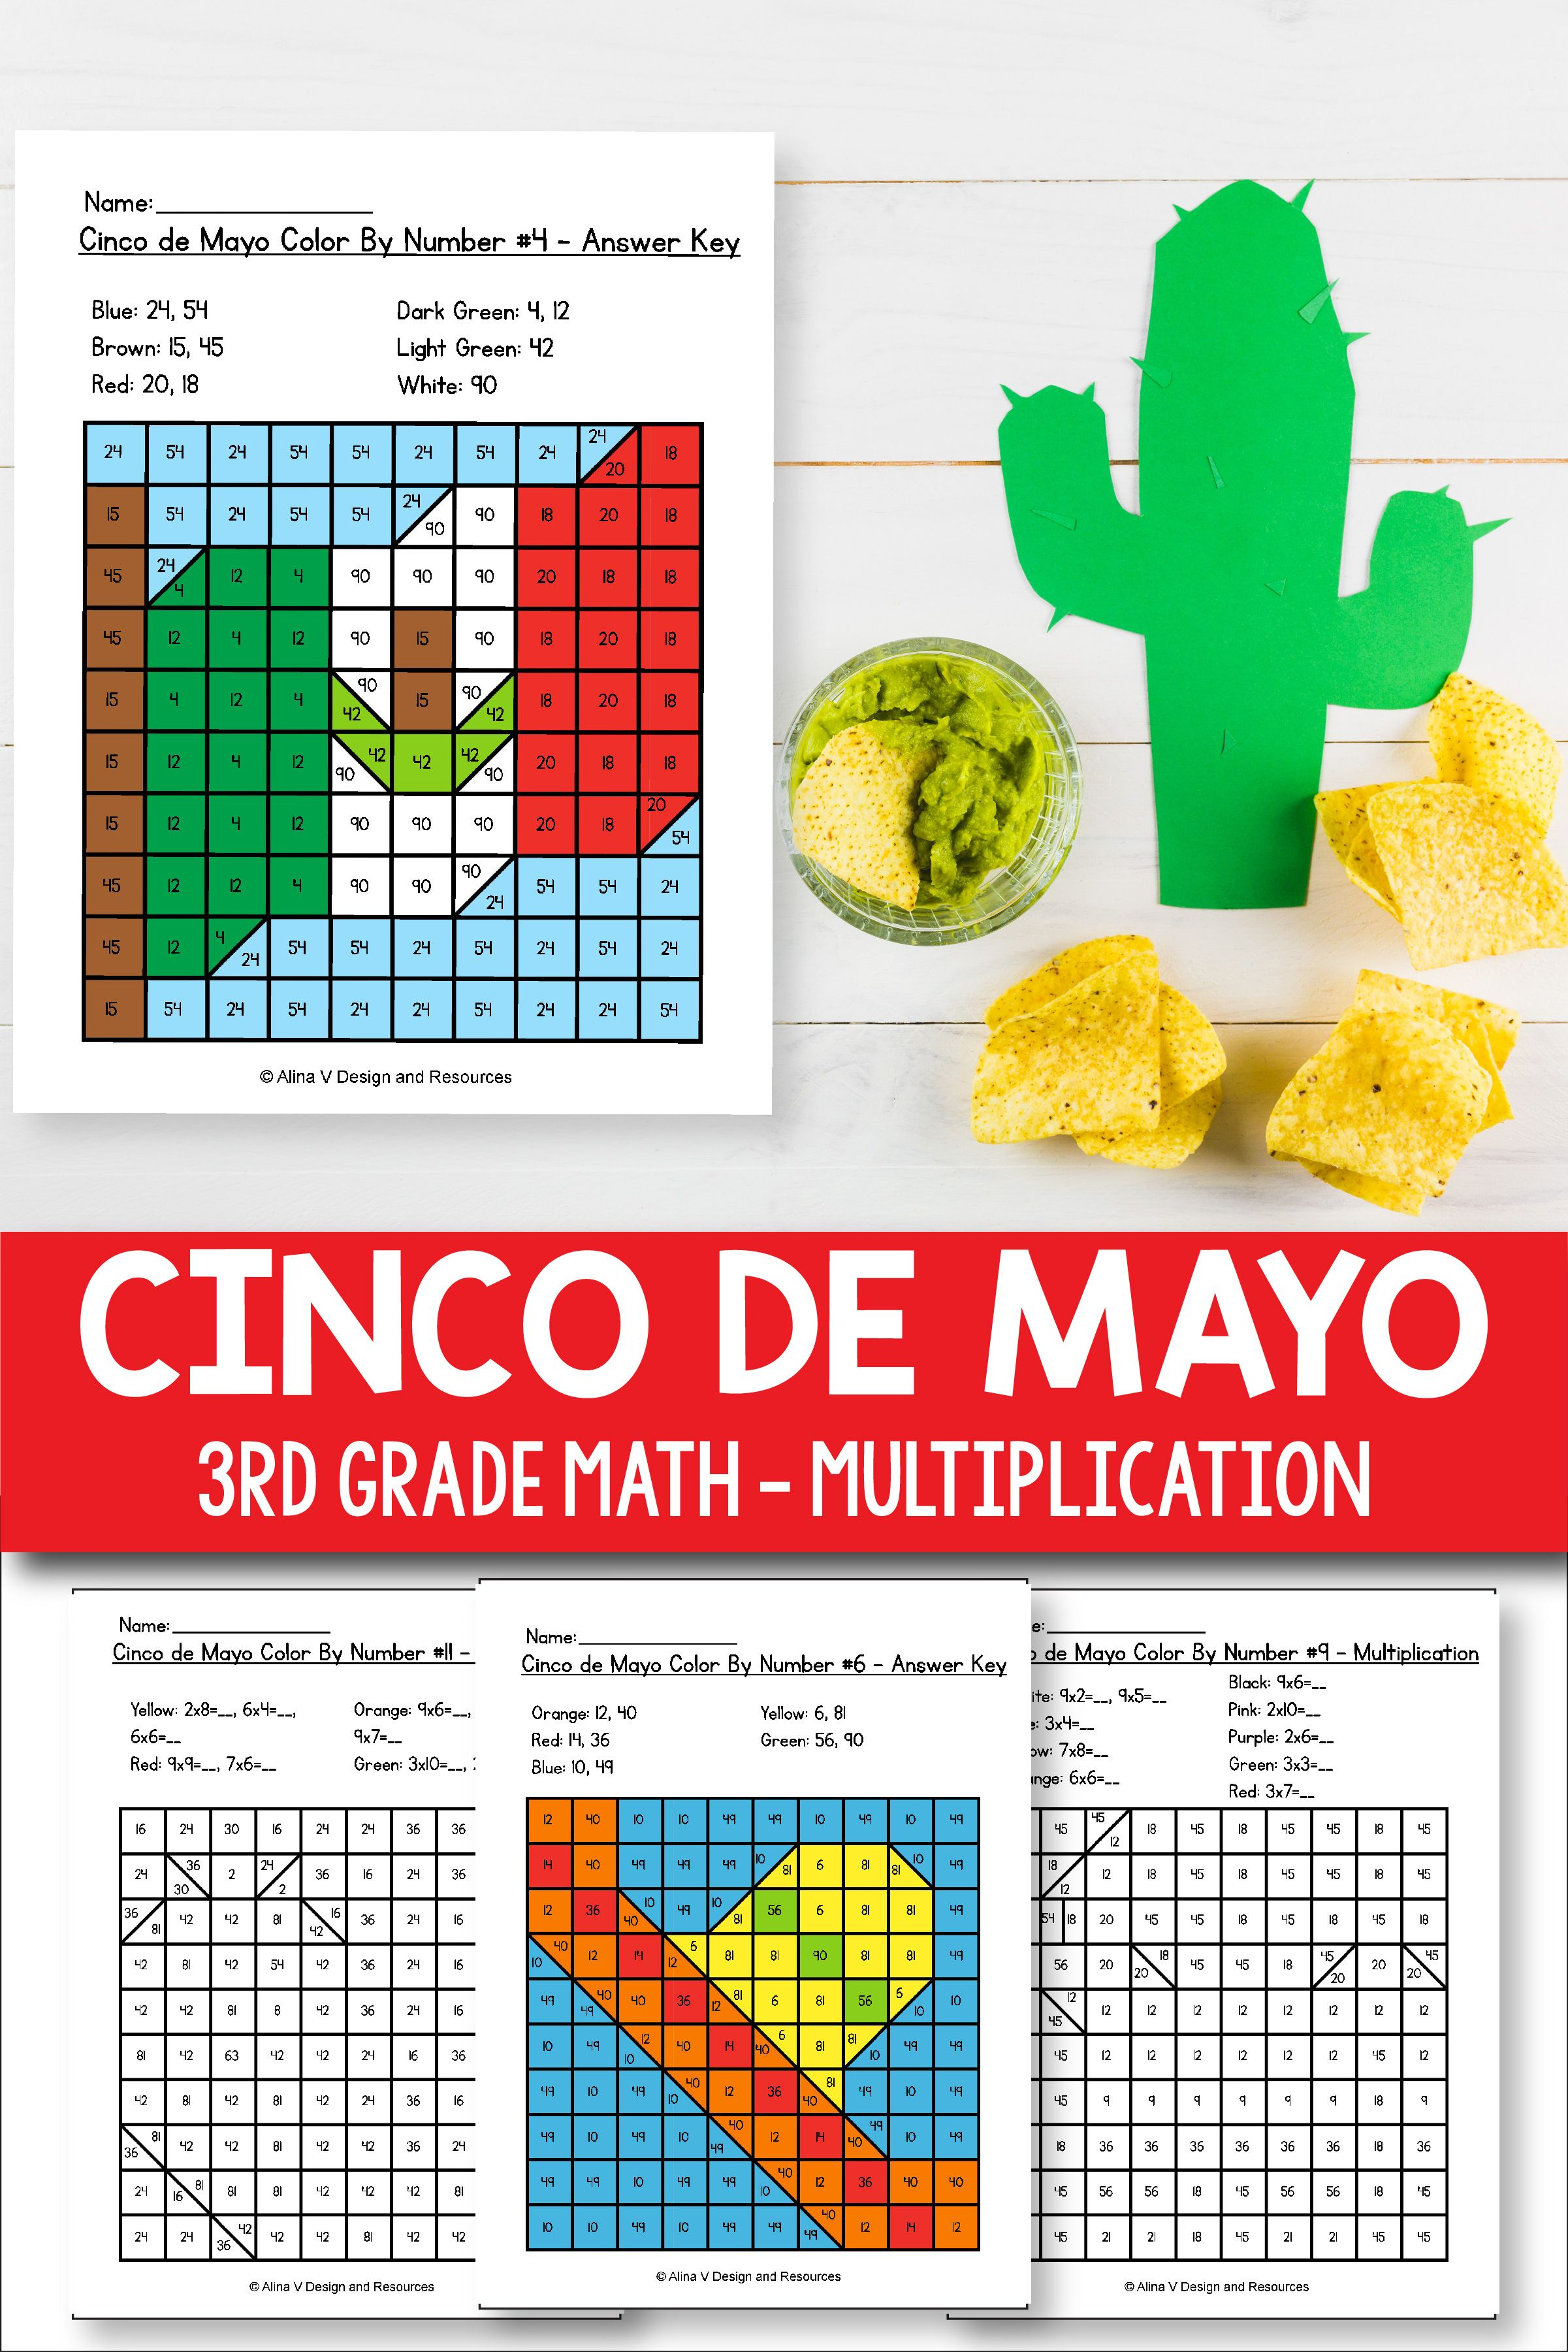 Cinco de Mayo Multiplication Math Worksheets for 3rd grade kids is fun with  these hundreds chart print…   Elementary math lessons [ 3601 x 2401 Pixel ]